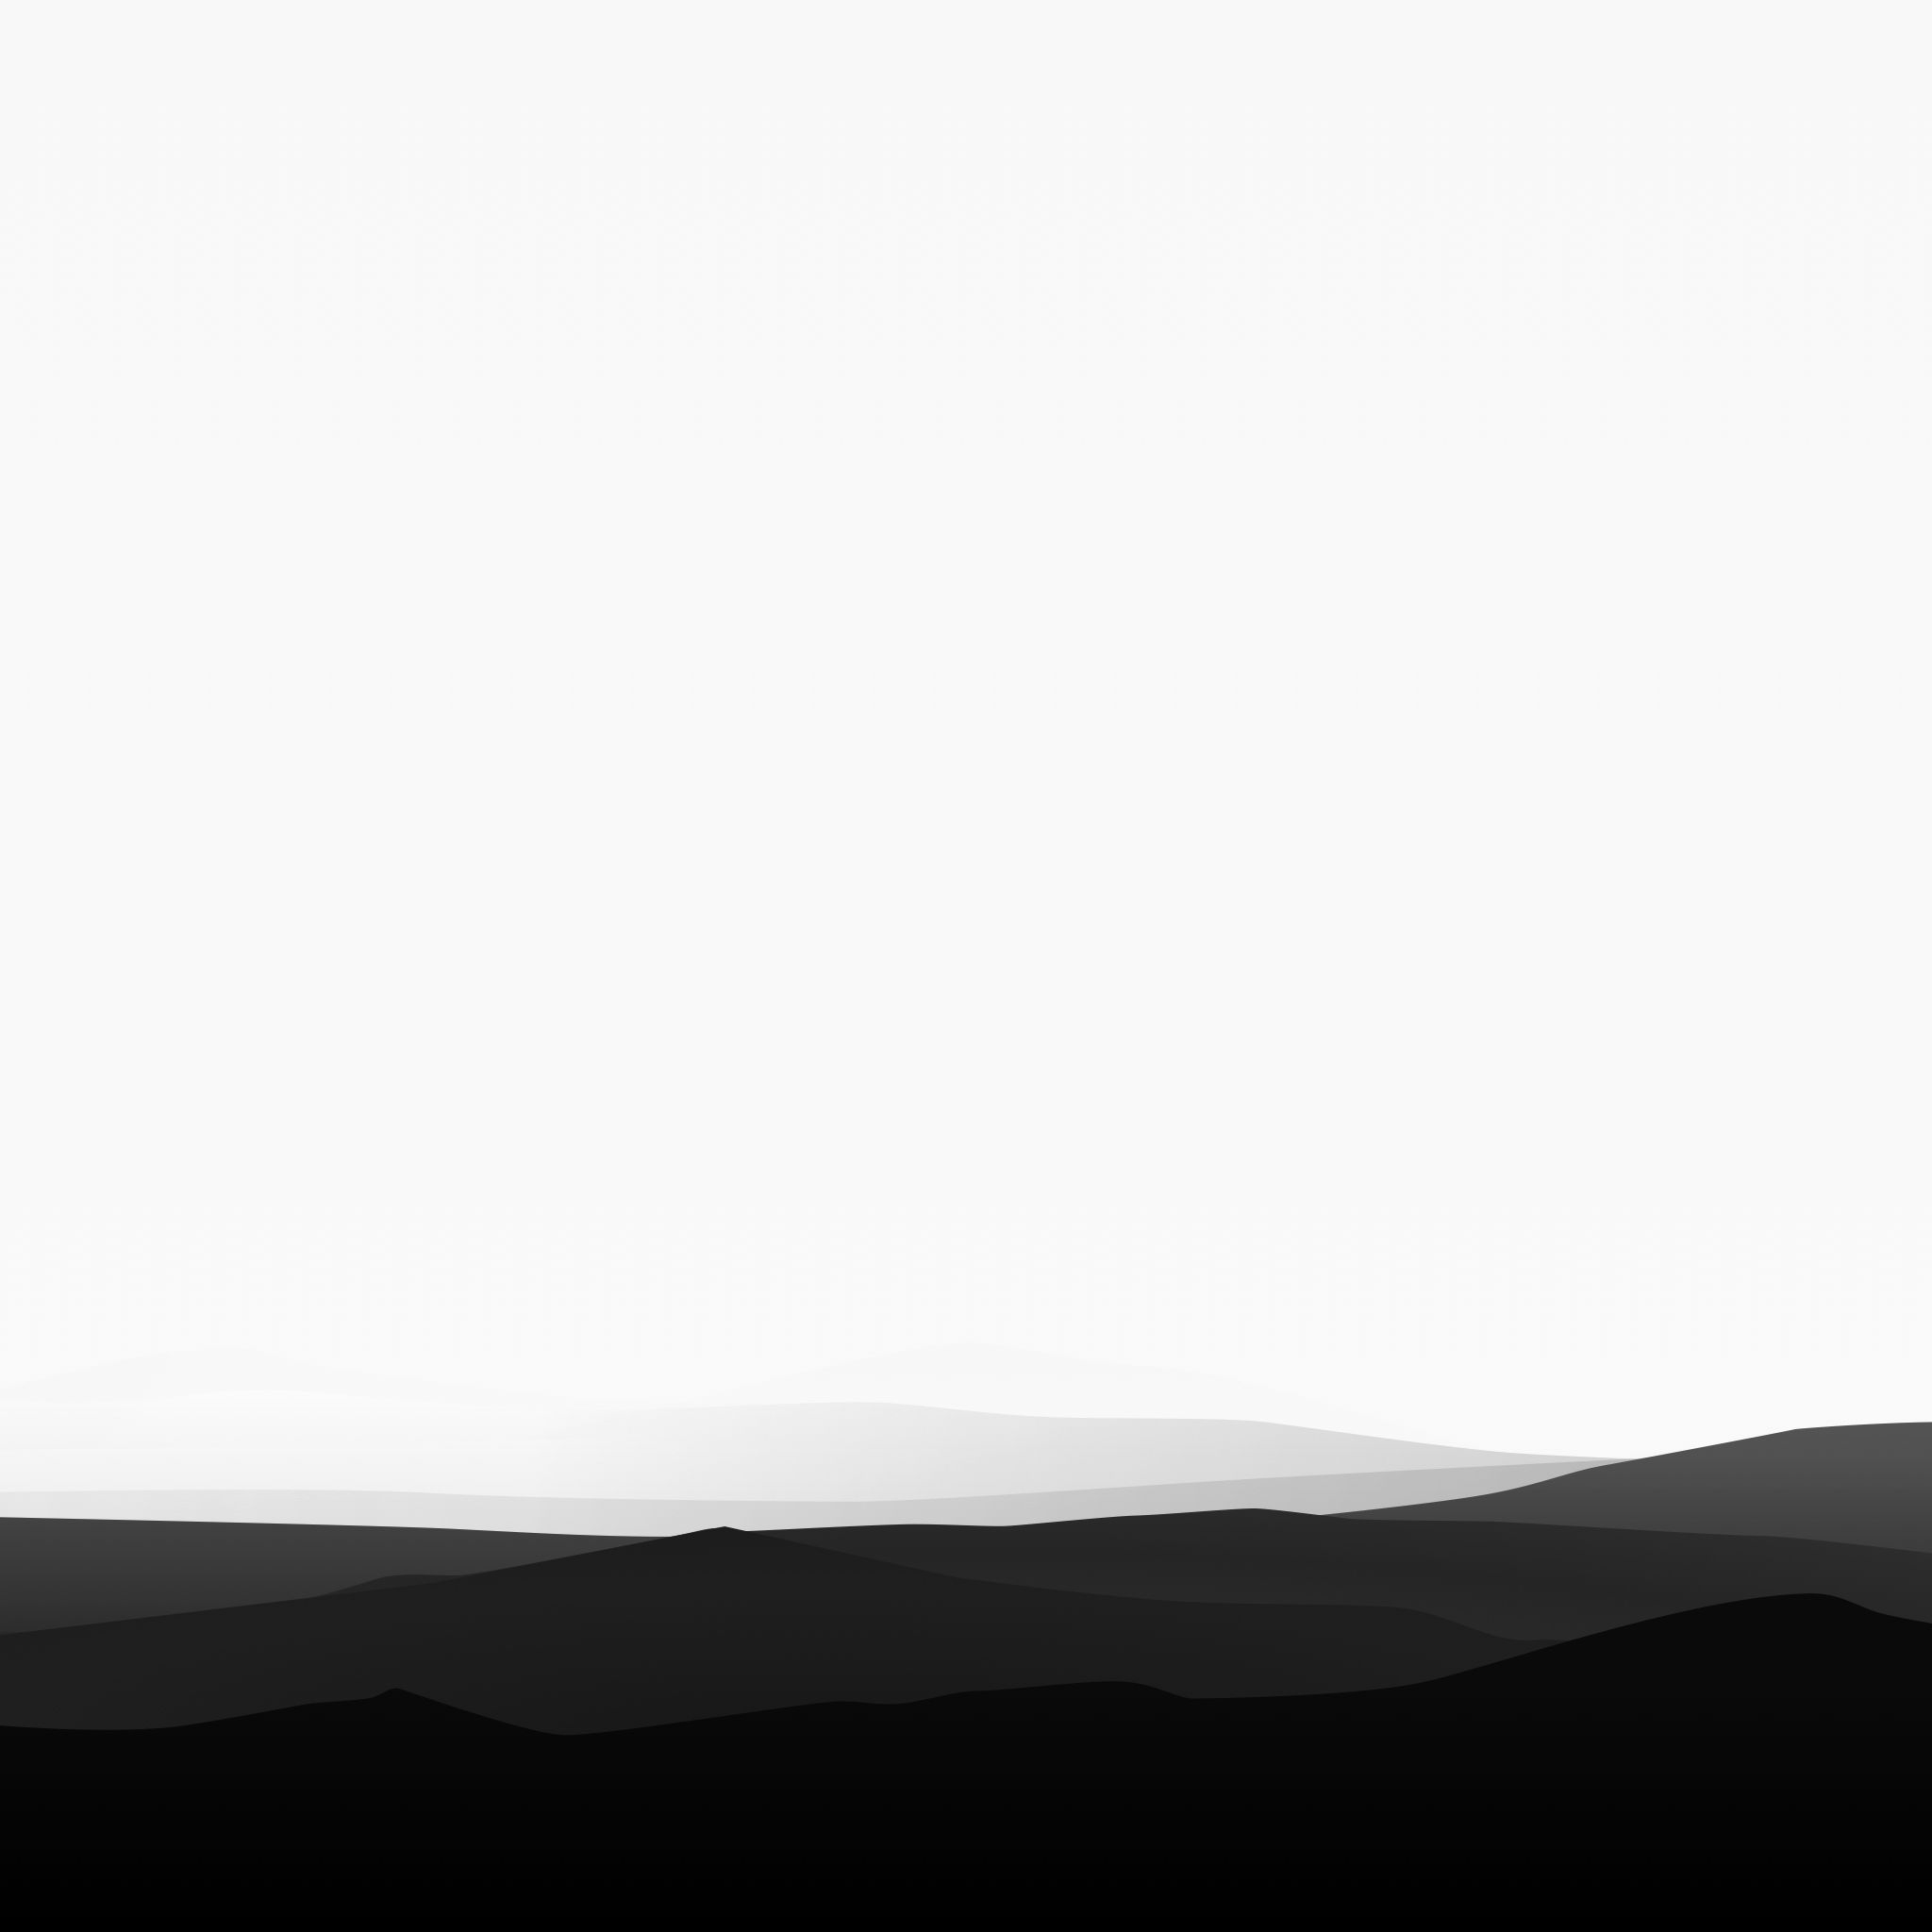 minimalist iphone wallpaper unique wallpapers of the week minimalist mountains continued 2019 of minimalist iphone wallpaper